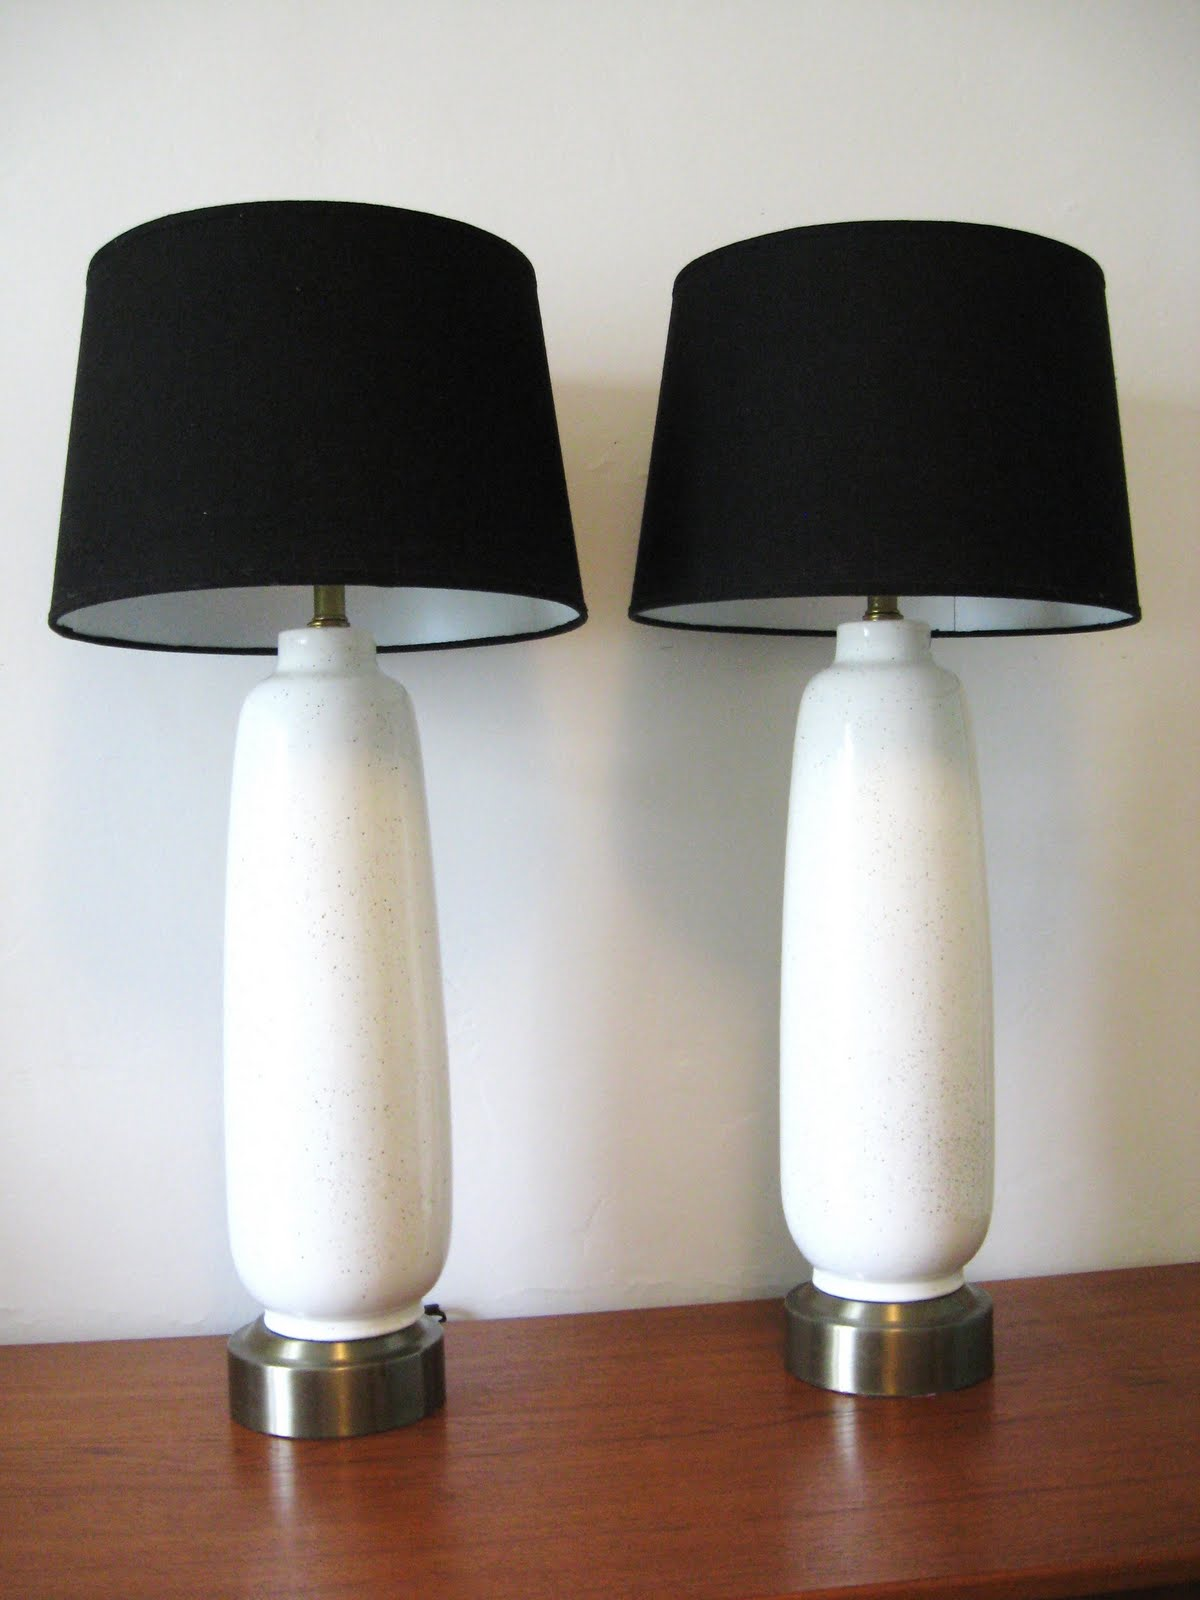 [lamps]